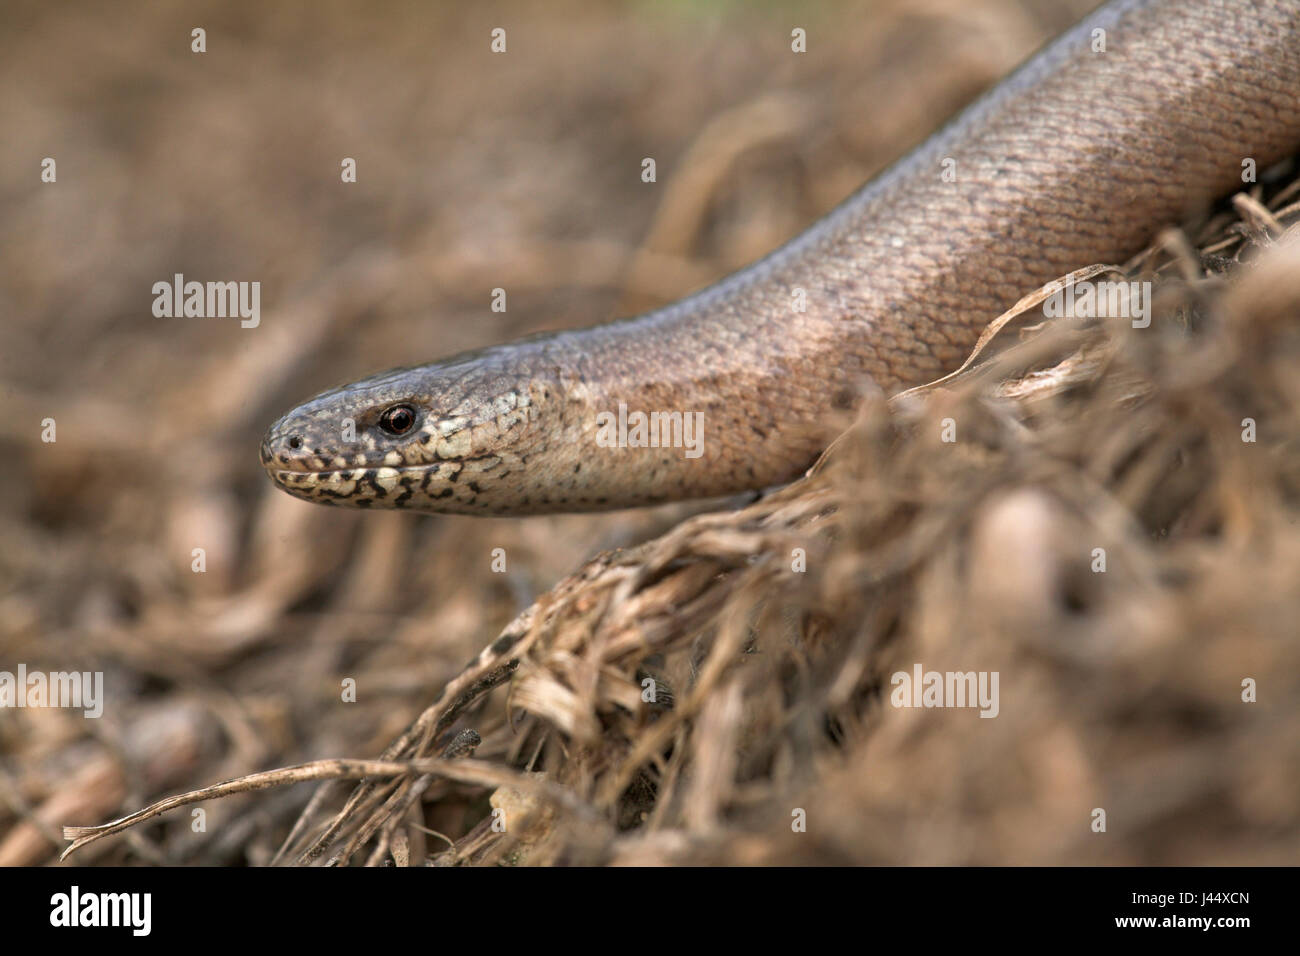 male slow worm Stock Photo